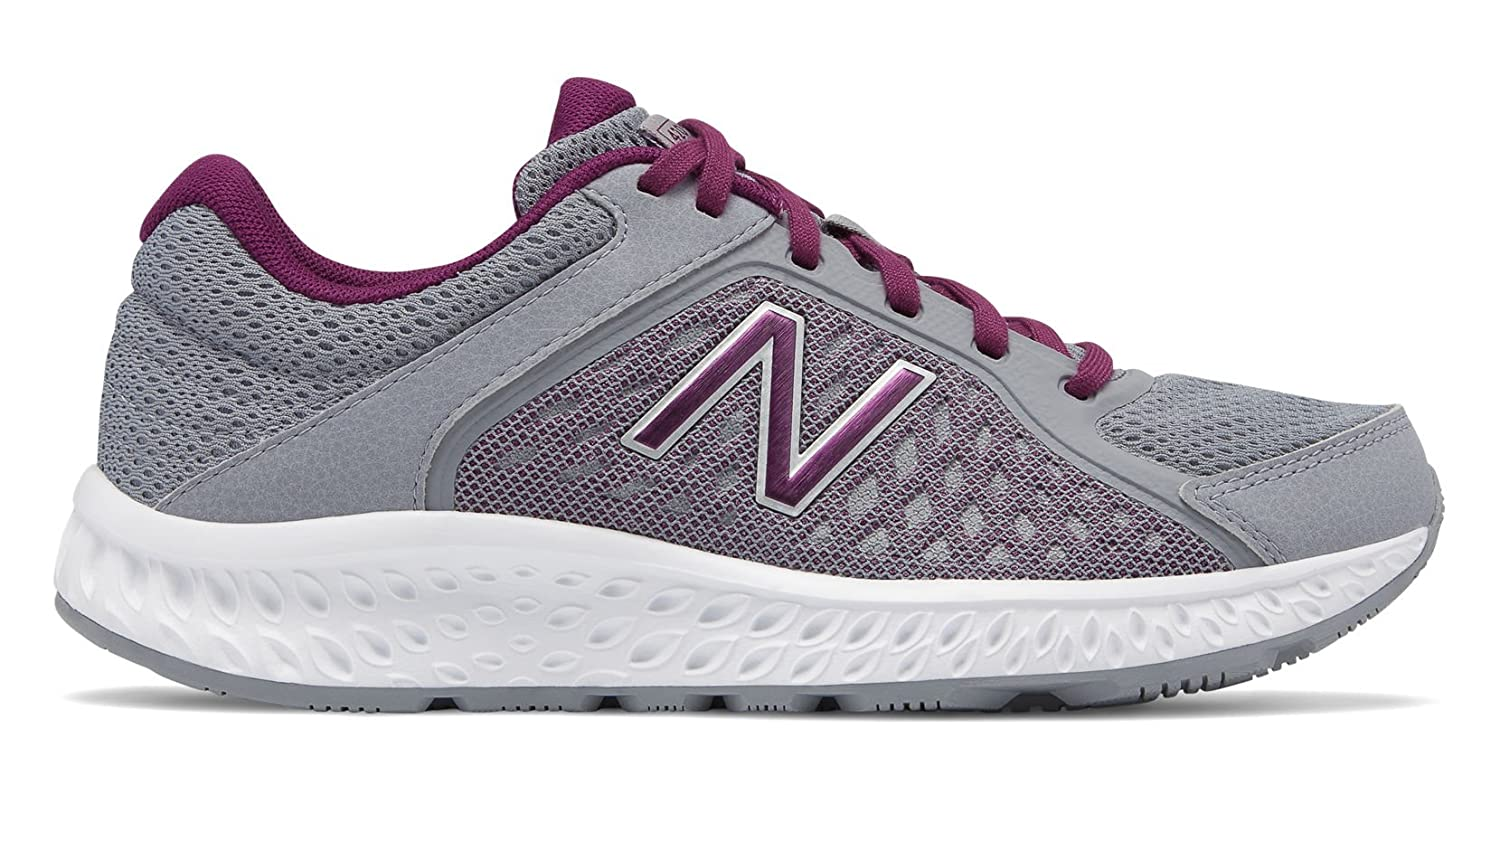 New Balance Women's 420v4 Cushioning Running Shoe B0791RW89N 12 B(M) US|Steel/Claret/Silver Metallic